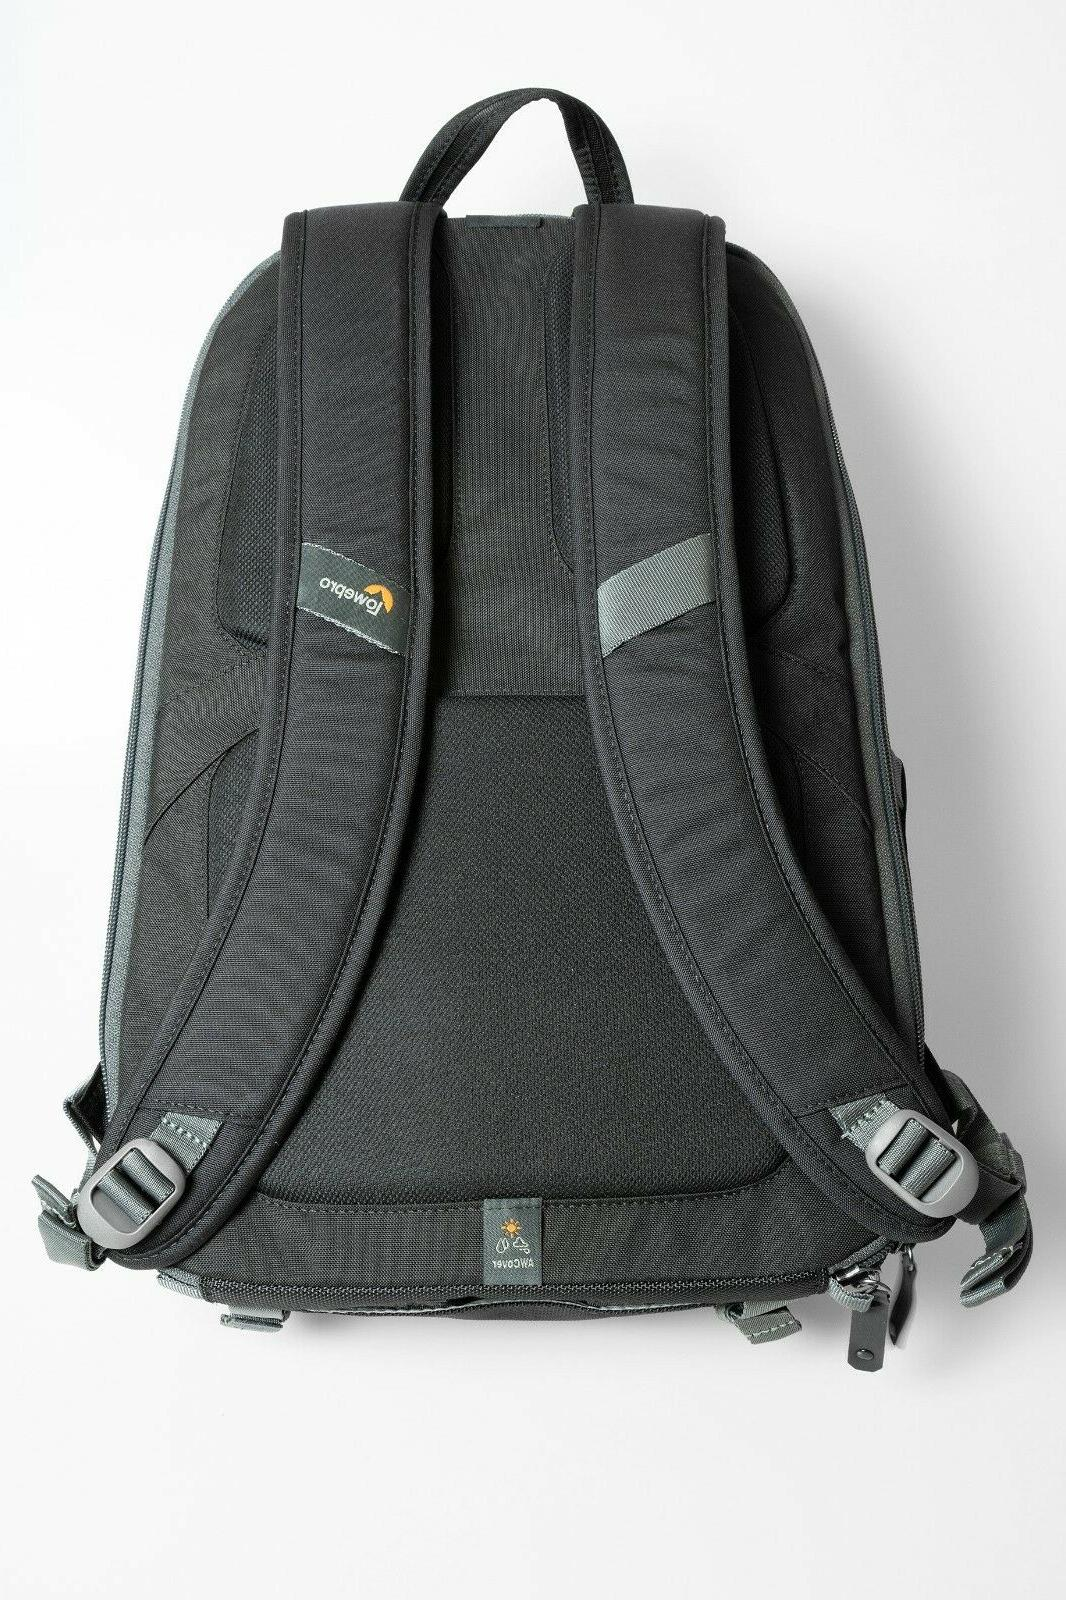 Lowepro Backpack -- &